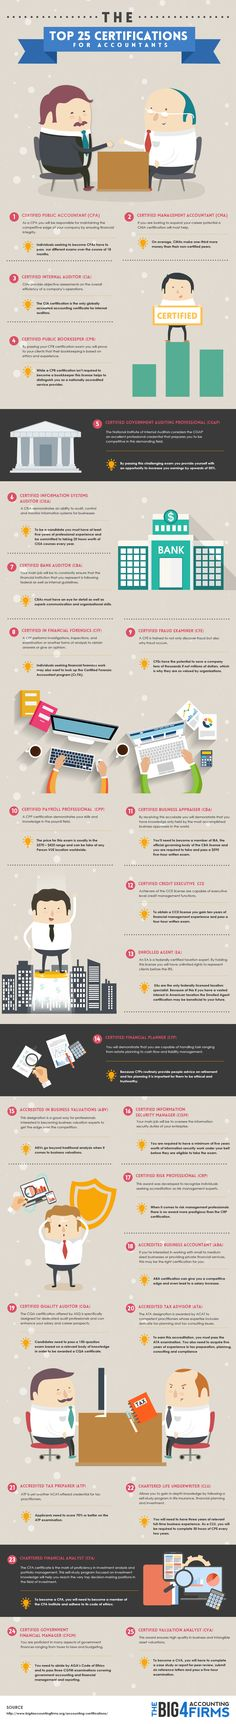 The 25 Best Certifications for Accounting Professionals #infographic